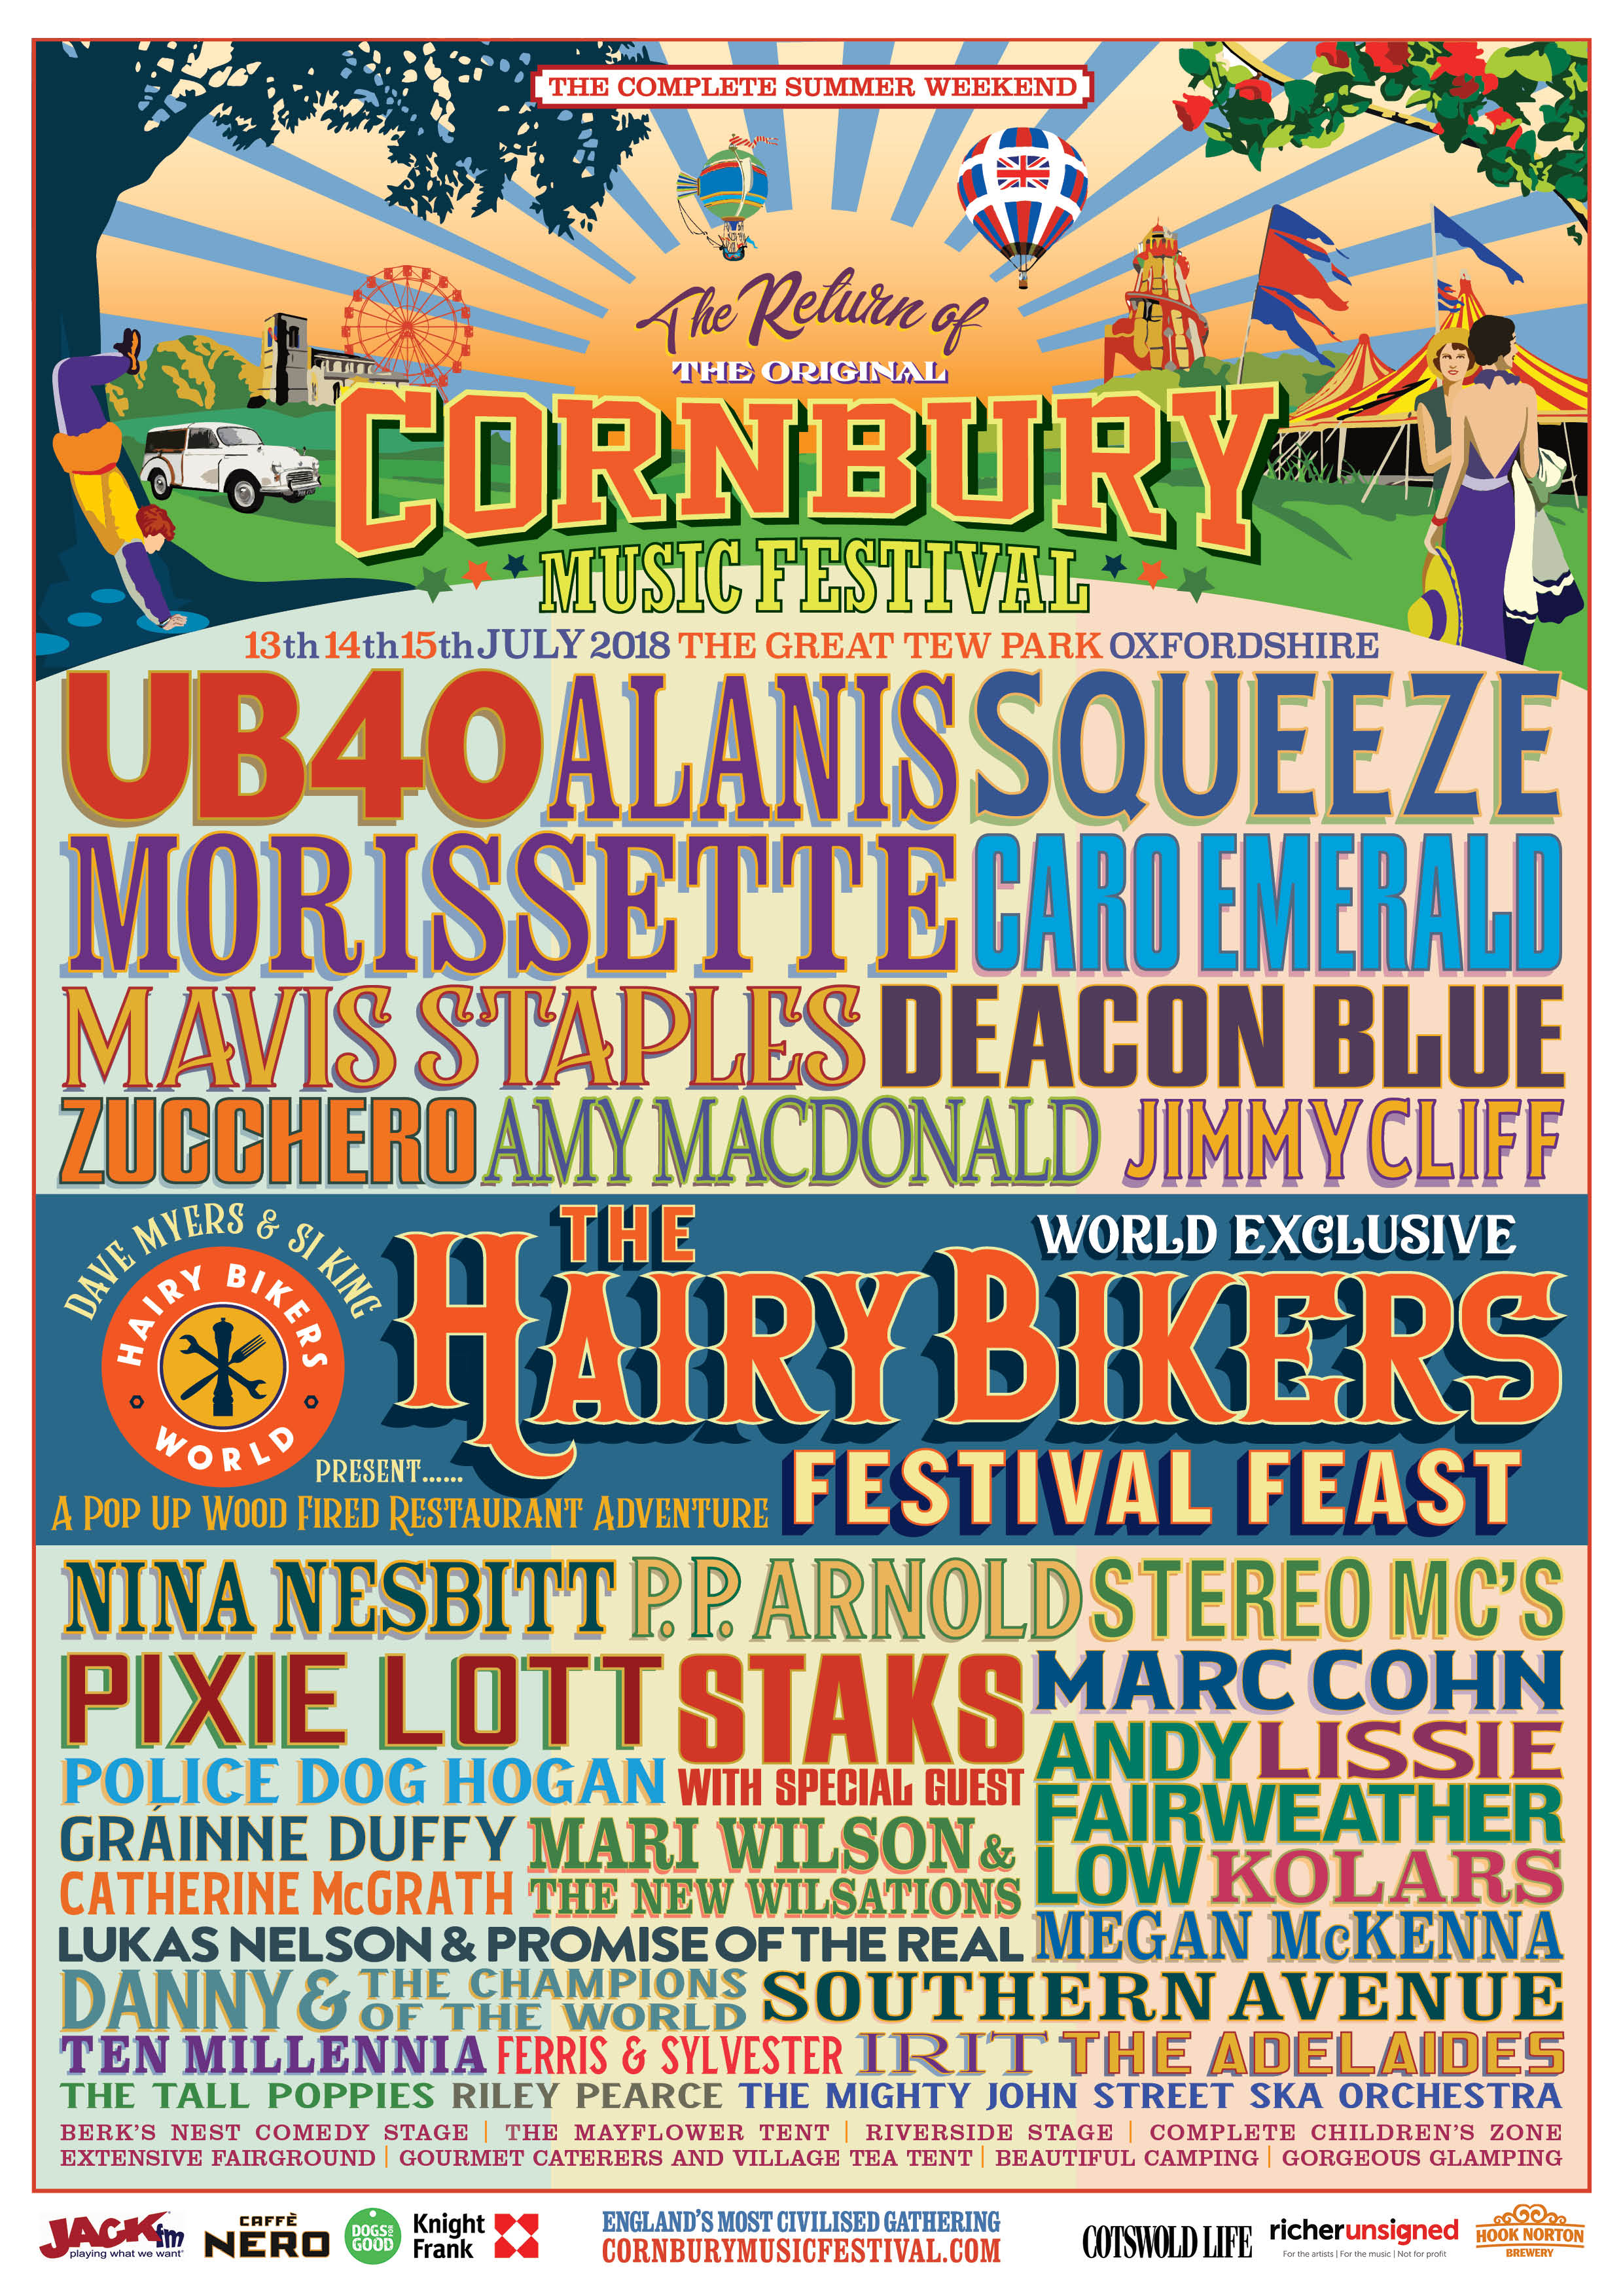 the hairy bikers announced for cornbury music festival 2018 - just